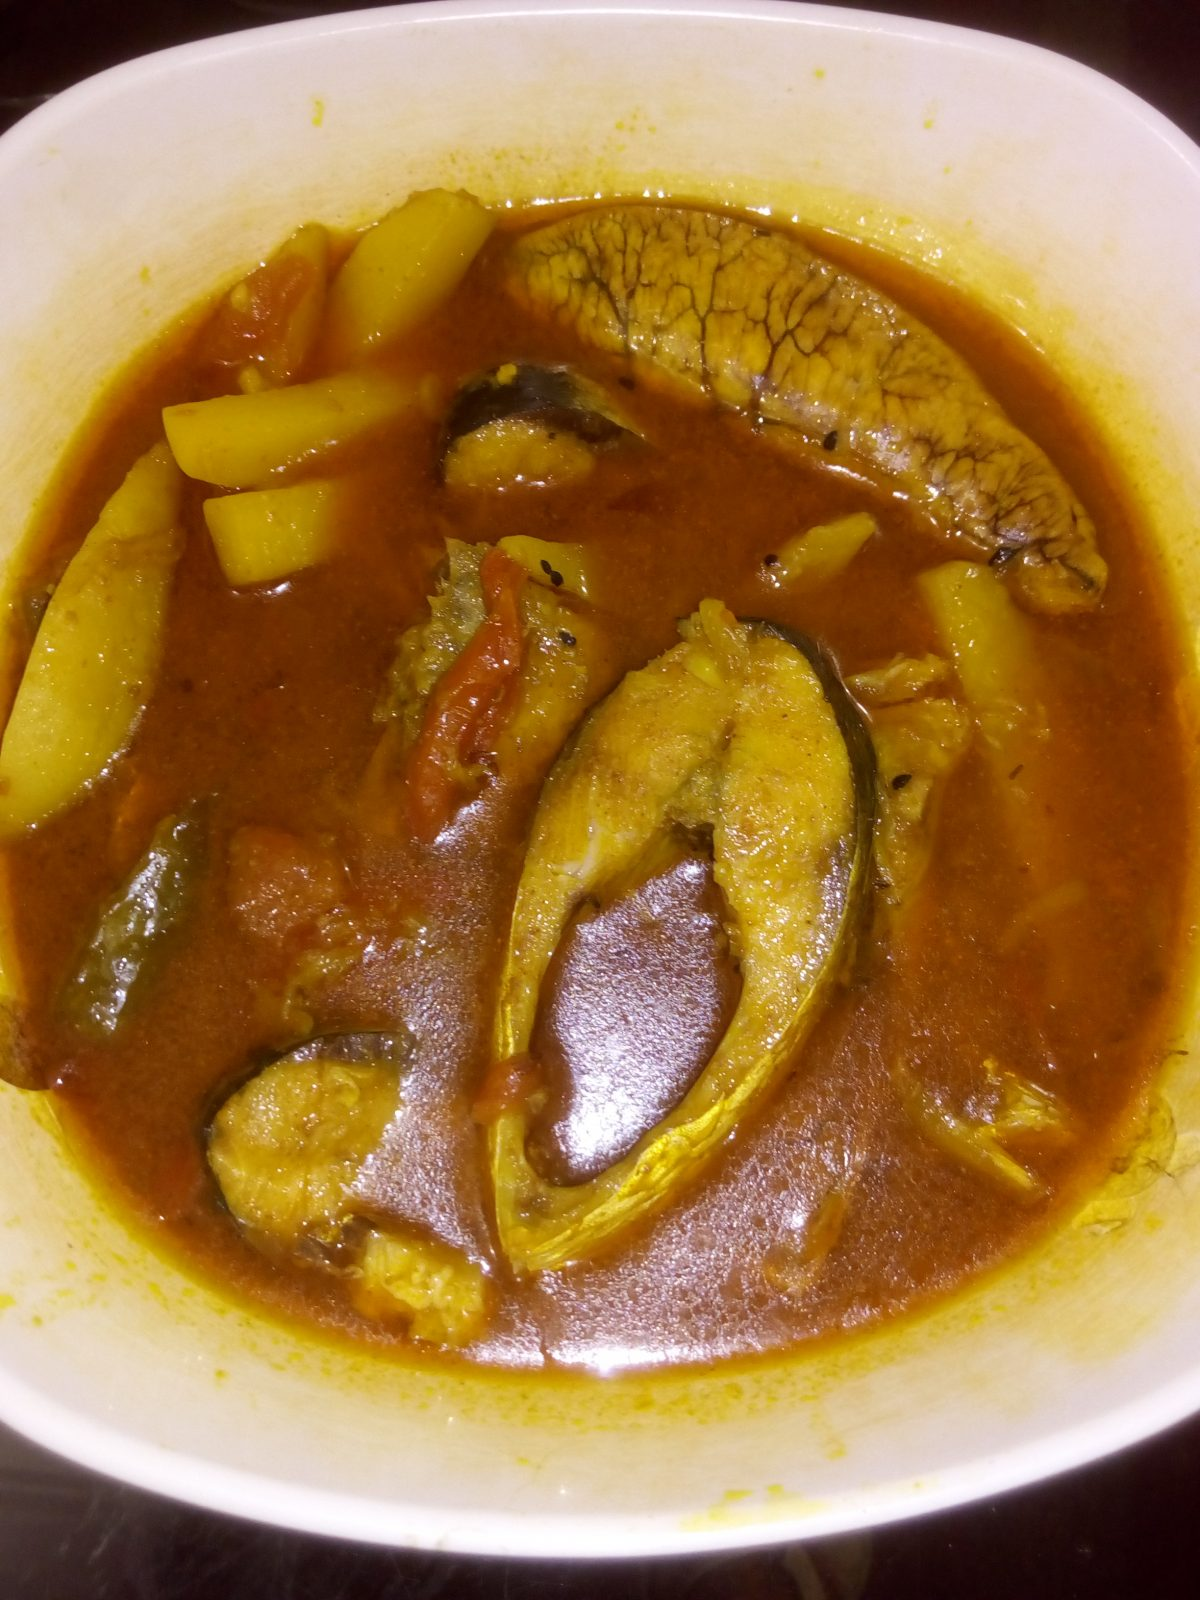 Tomato alu dia illish jhol from Ayesha's Kitchen